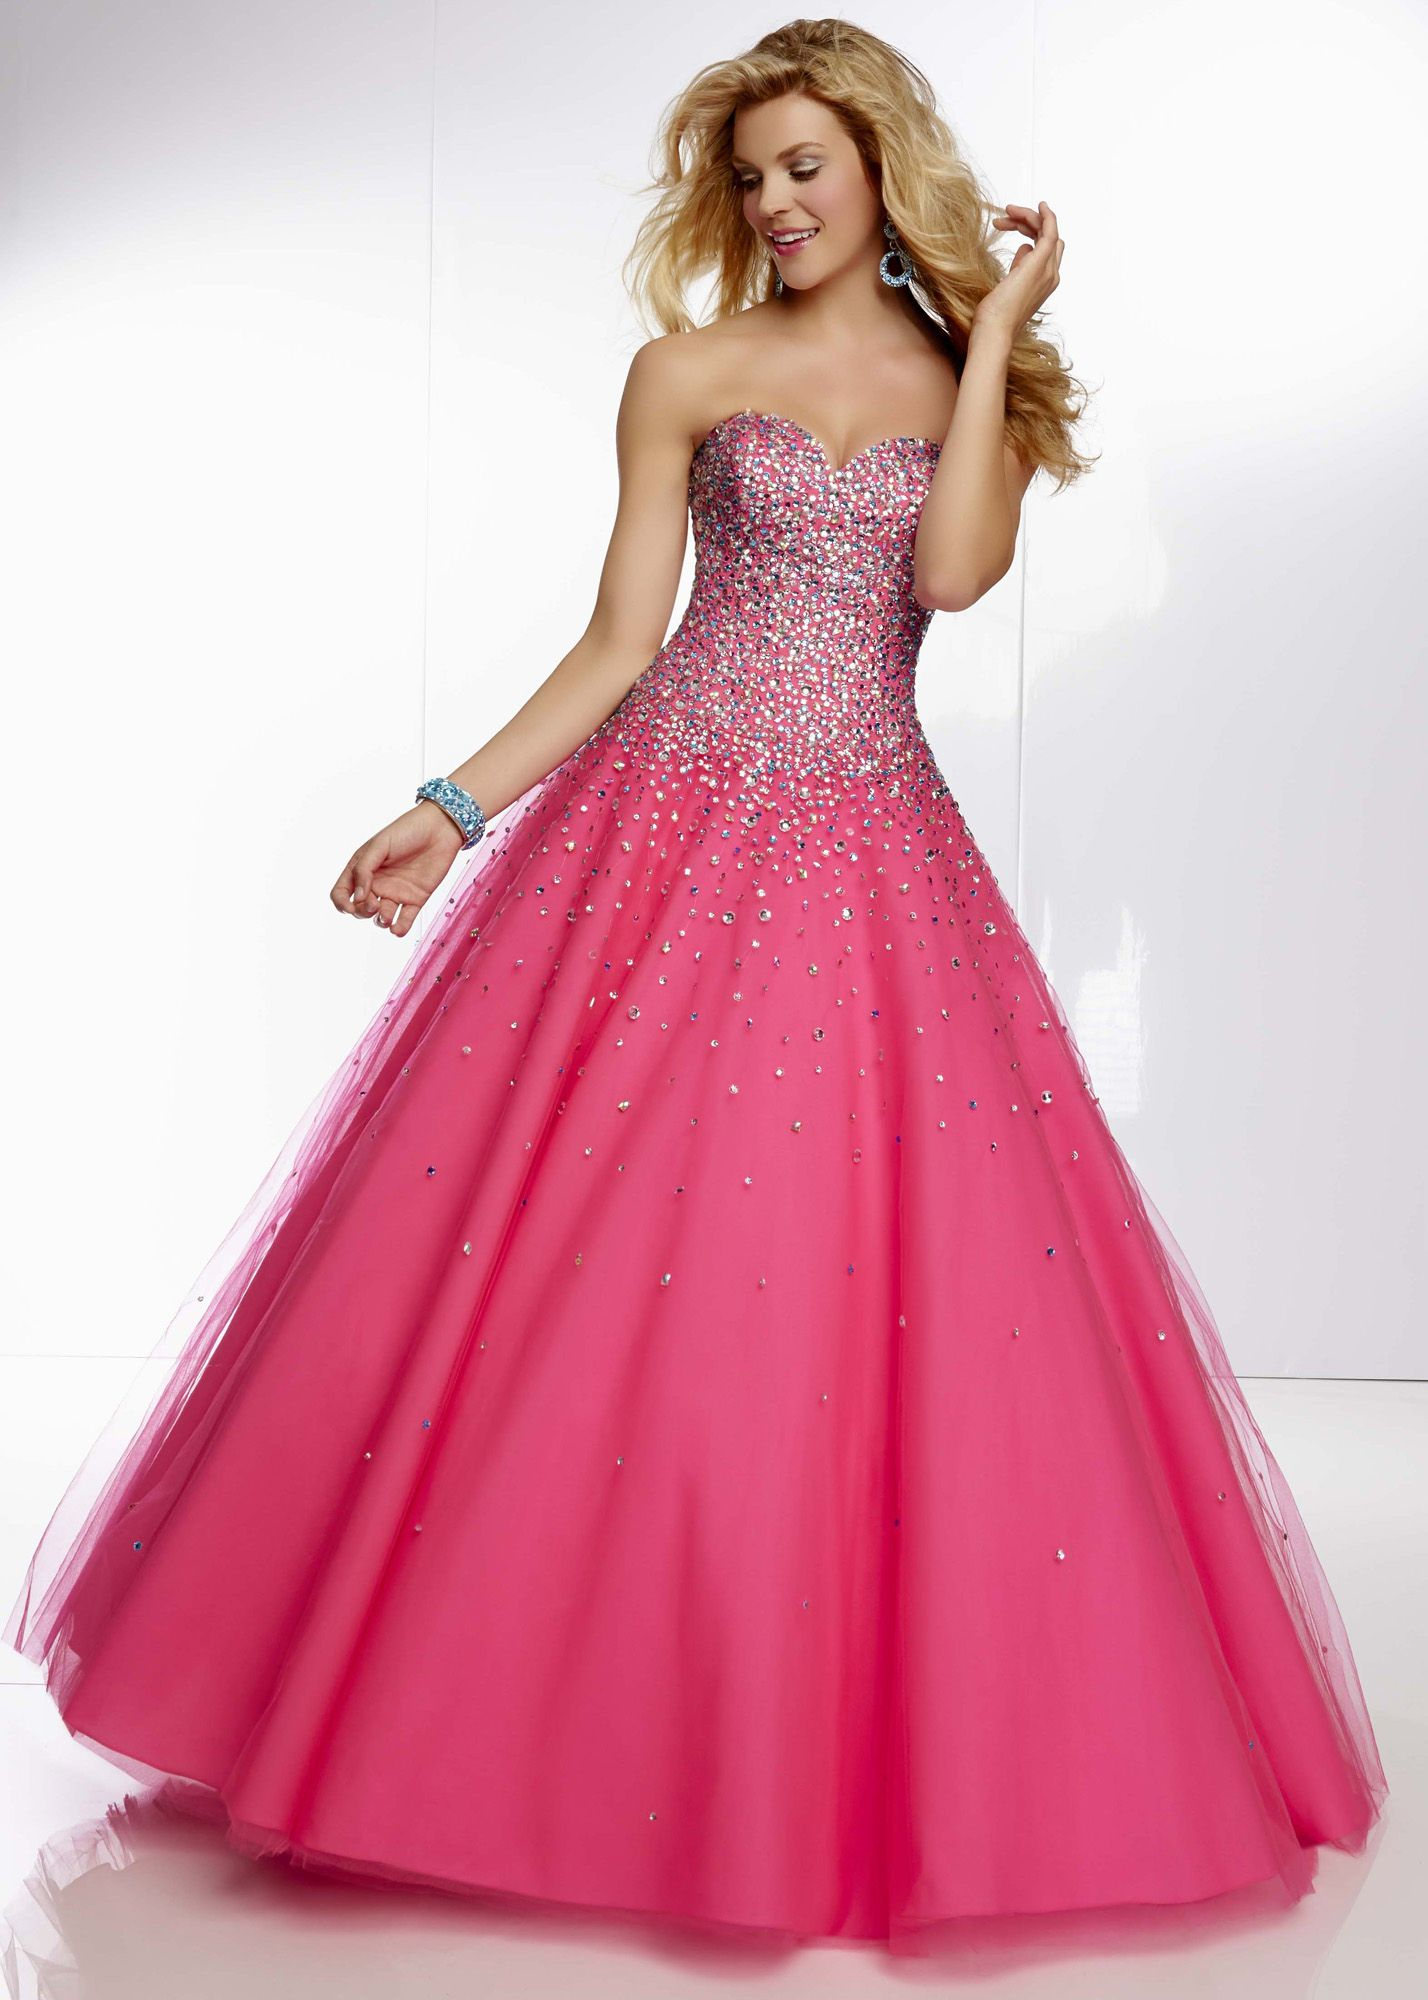 Mori Lee 95008 - Pink Panther Strapless Ball Gown Prom Dresses ...